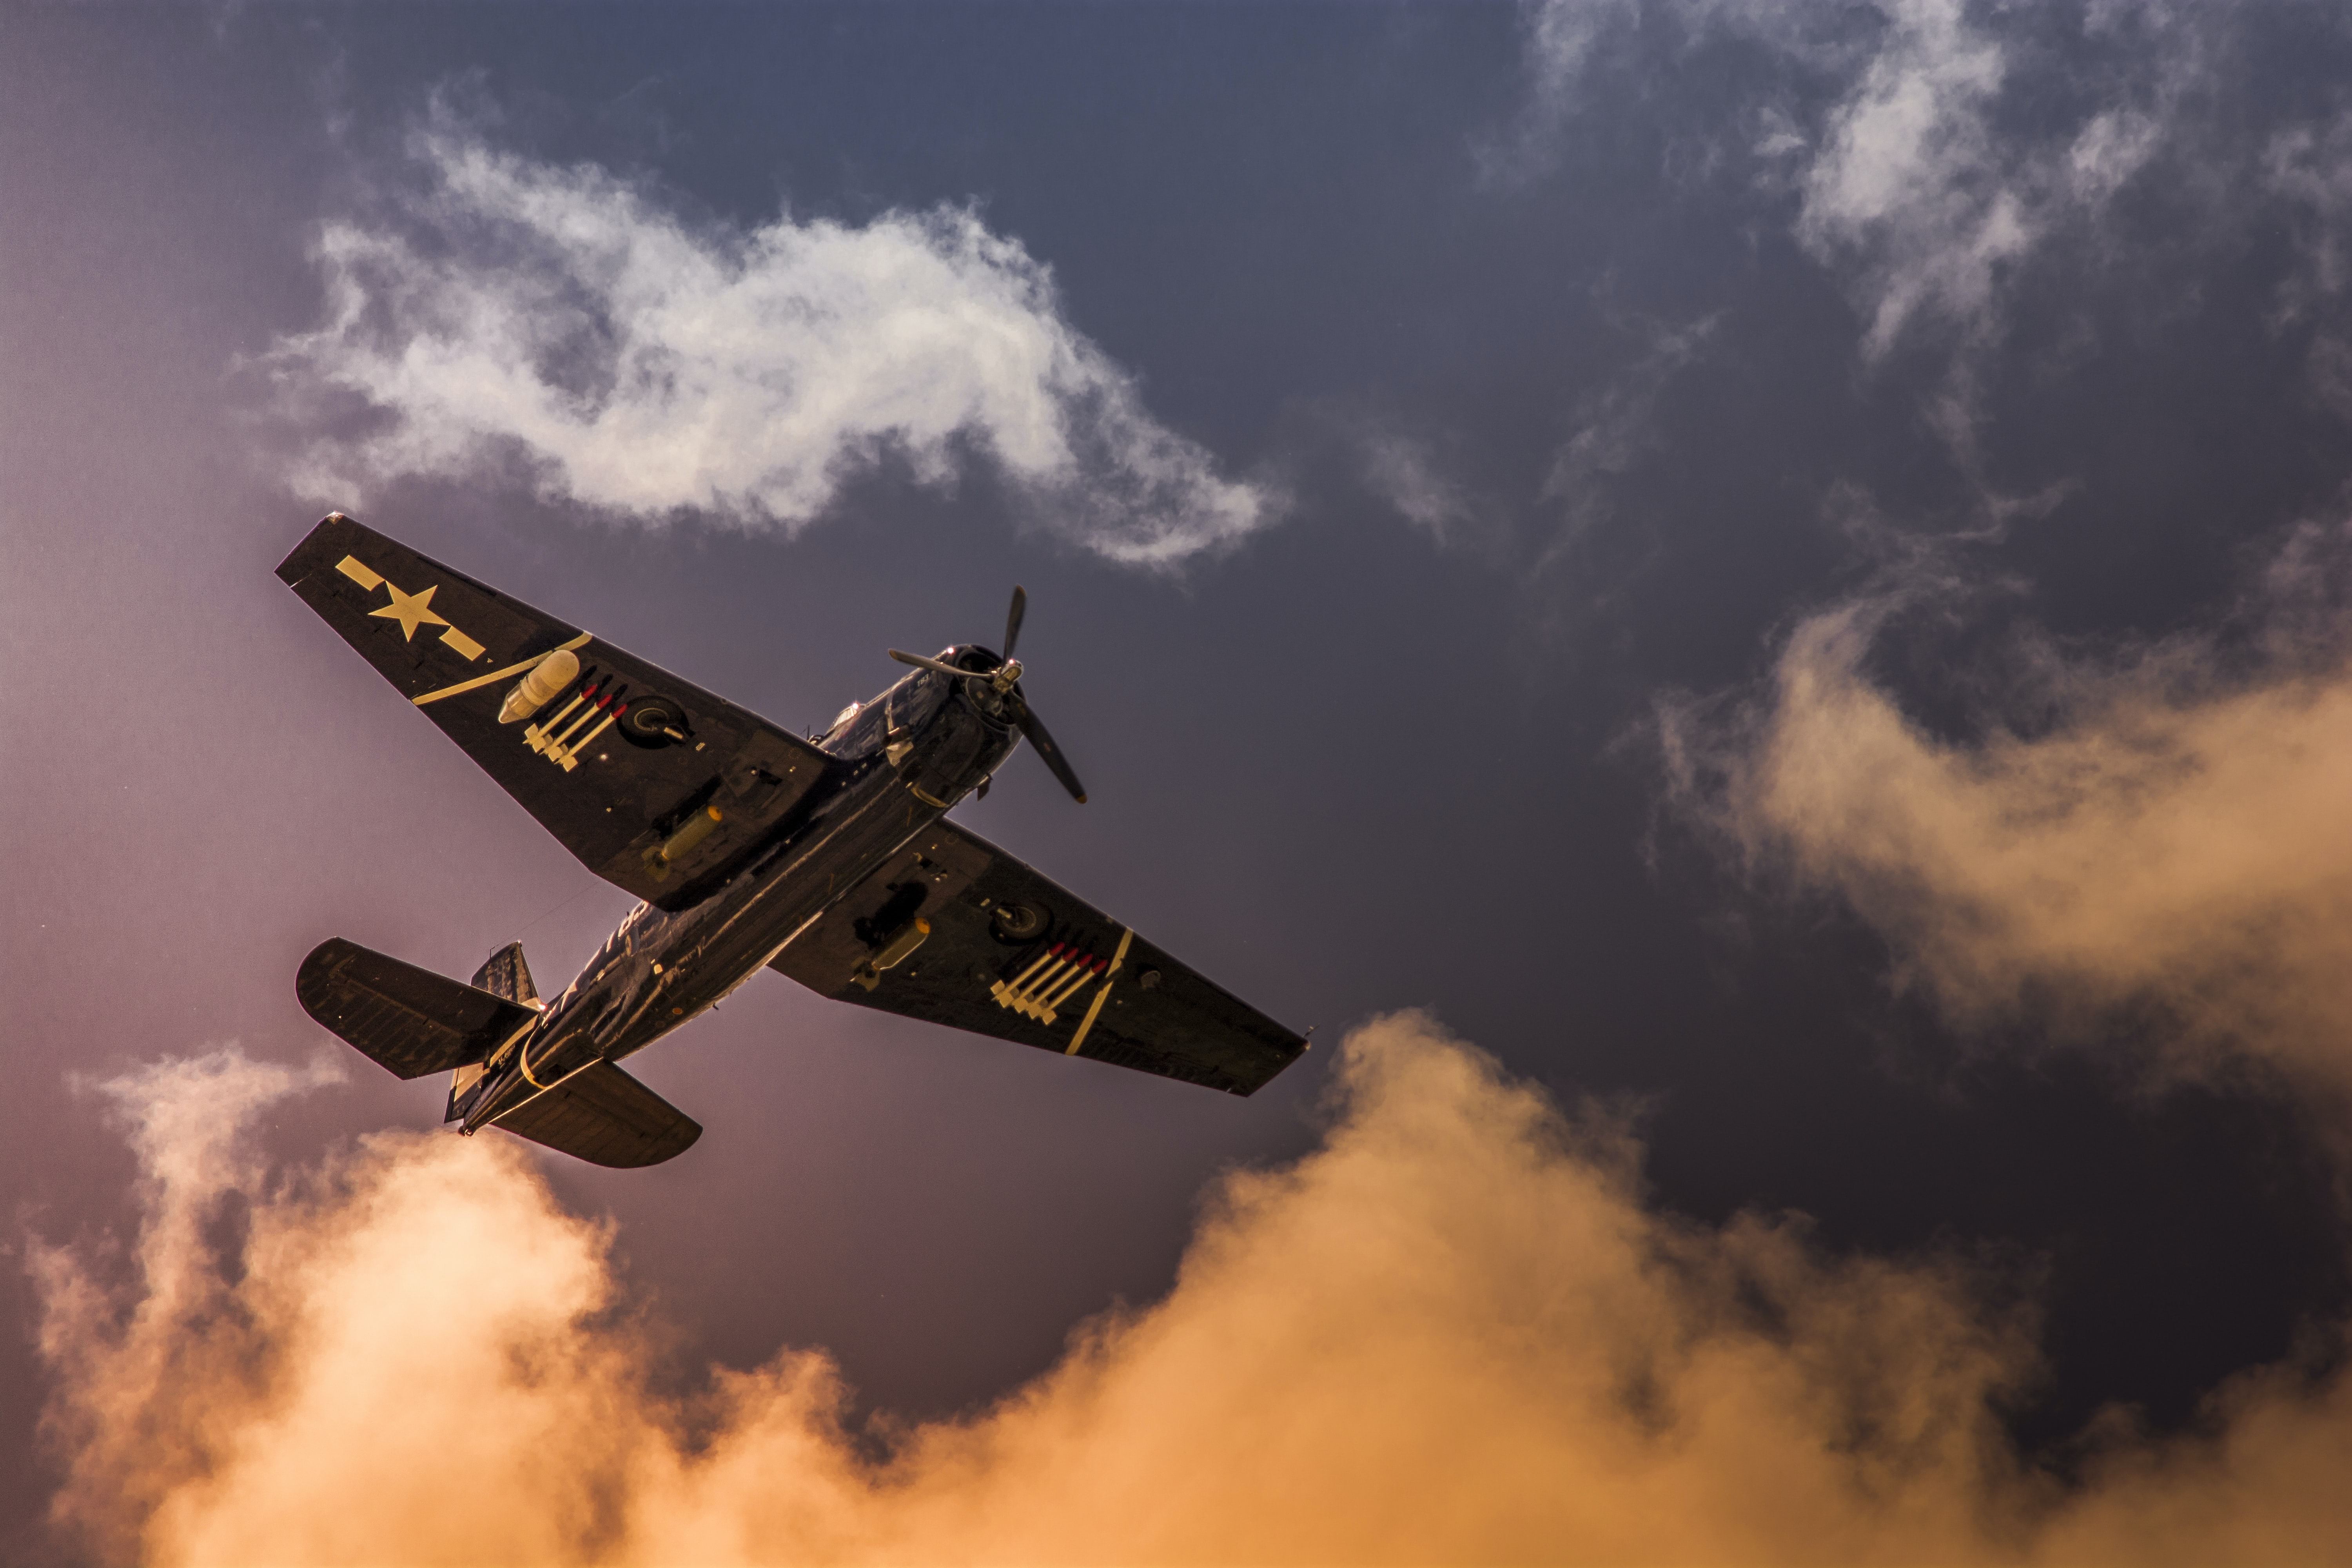 Ground view of an old war plane in the air.